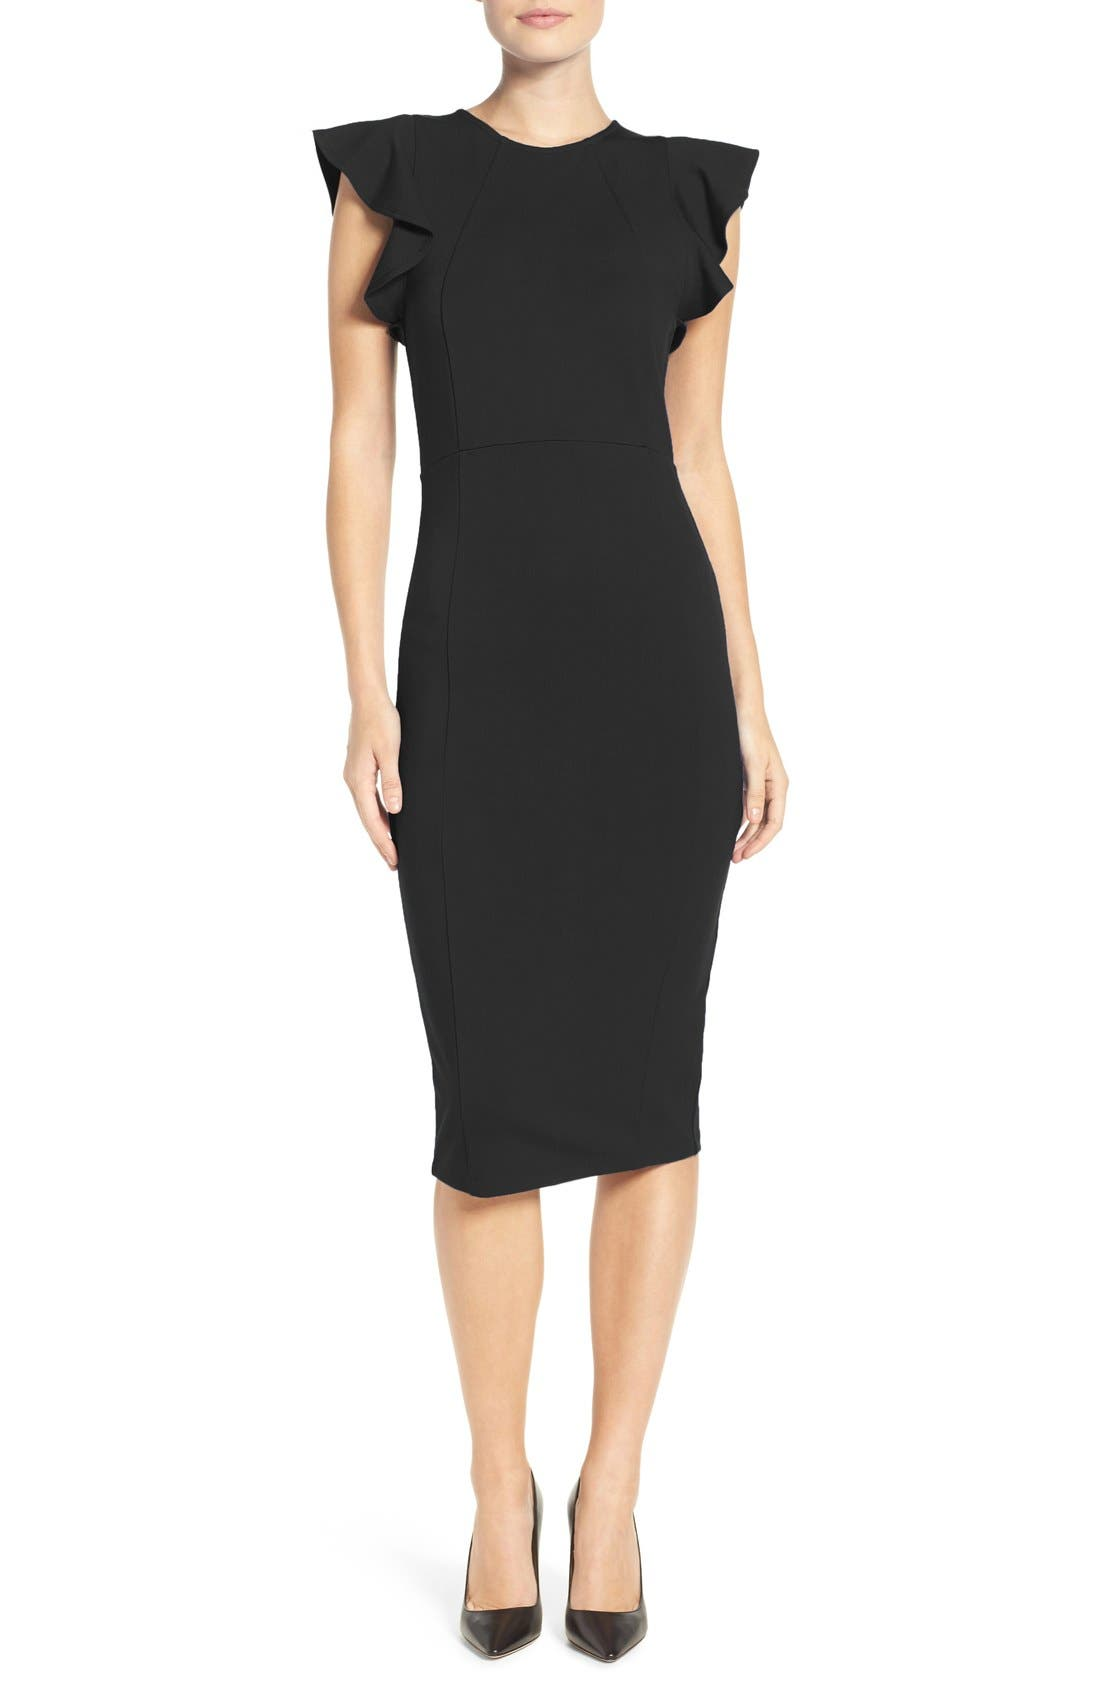 Felicity & Coco Capriana Ruffle Sheath Dress (Regular & Petite) (Nordstrom Exclusive)